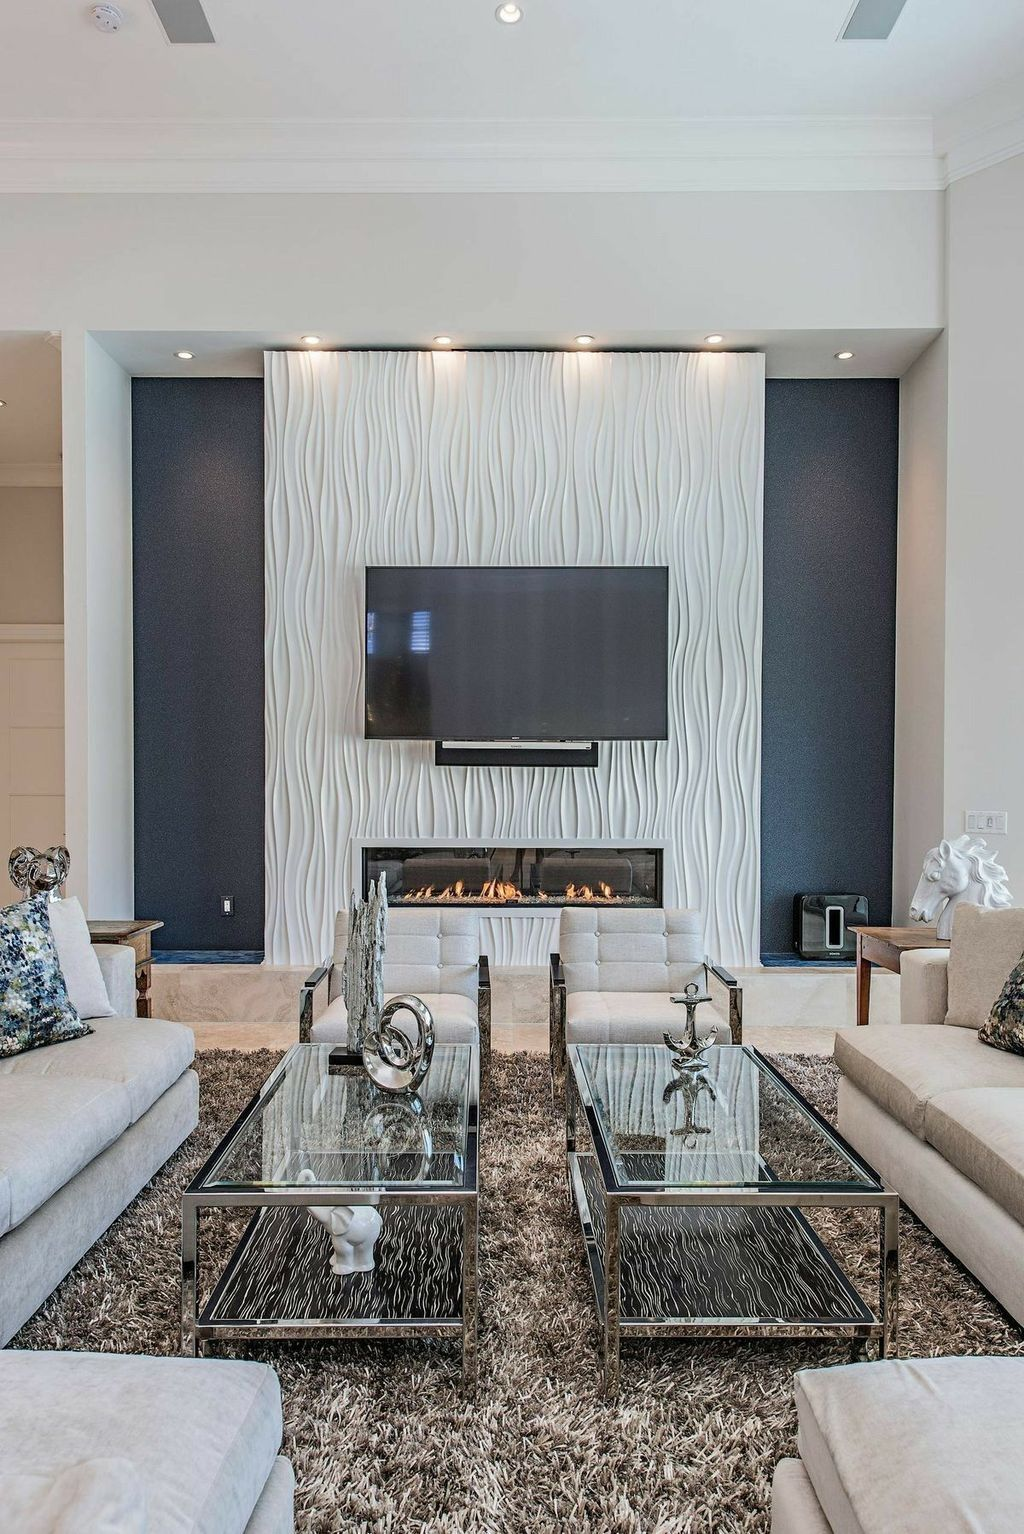 35 Attractive Living Room Ideas With Heating Fits The Winter Stylish Living Room Family Room Design Living Room With Fireplace #tv #in #living #room #with #fireplace